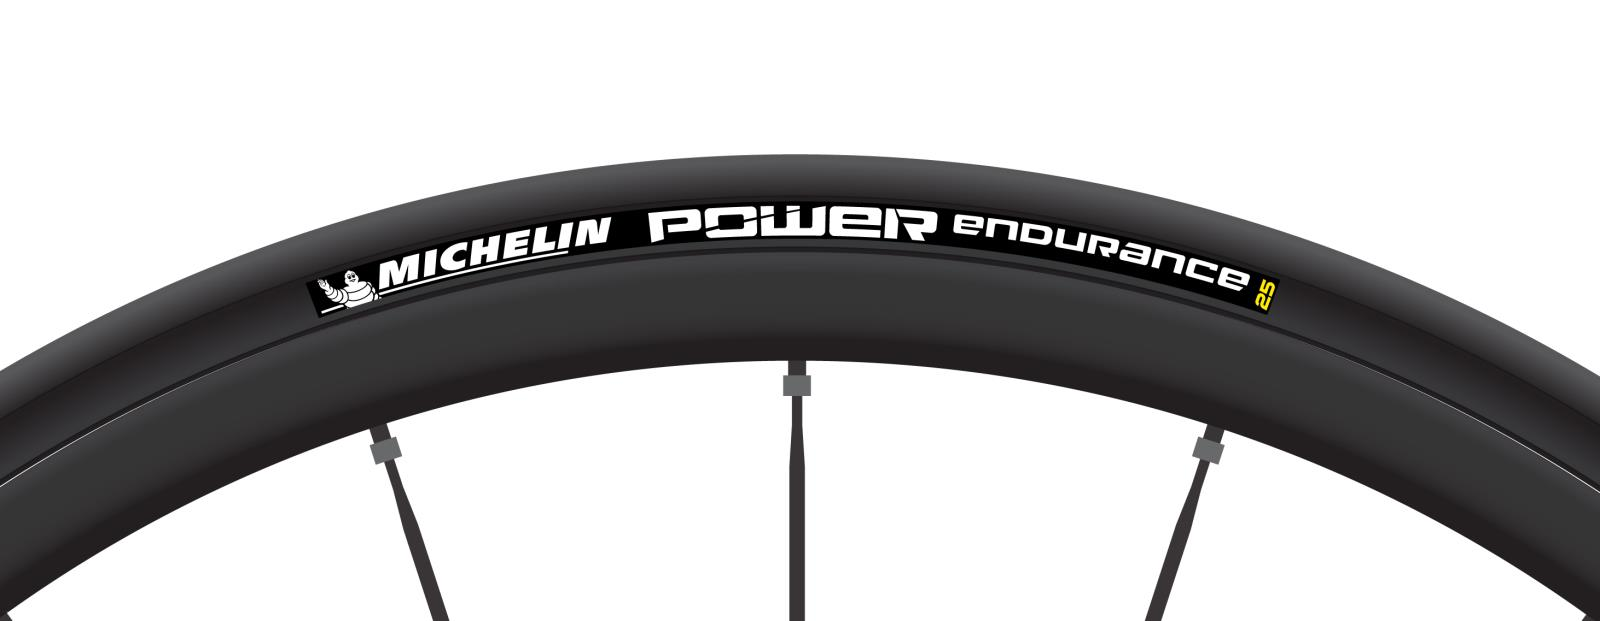 MichelinPower_Endurance_2D.jpg